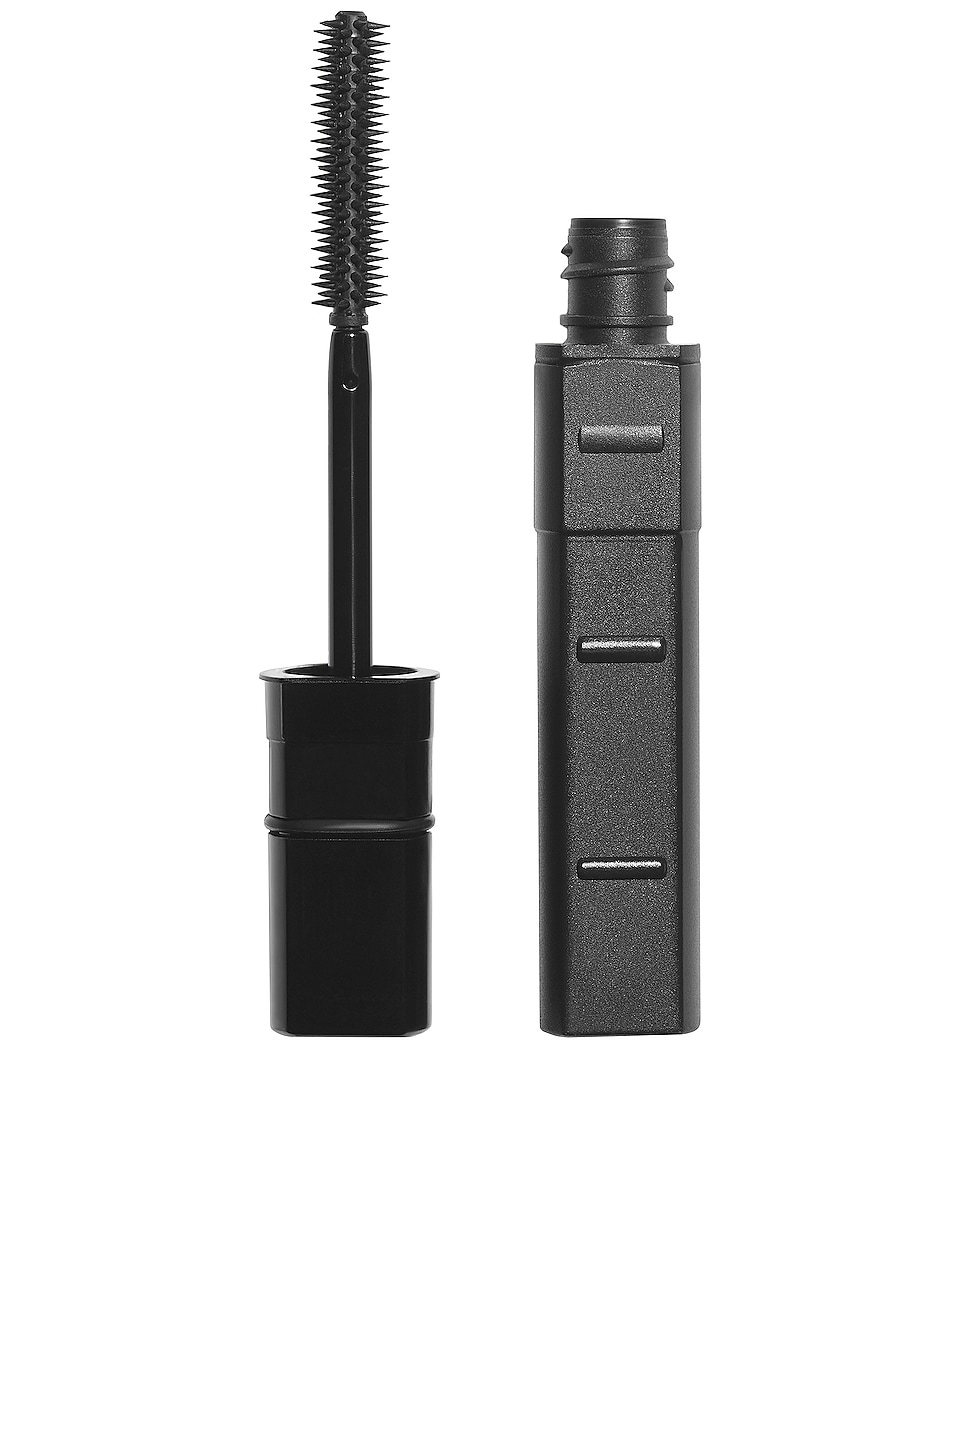 Kjaer Weis Lengthening Mascara Refill in Black